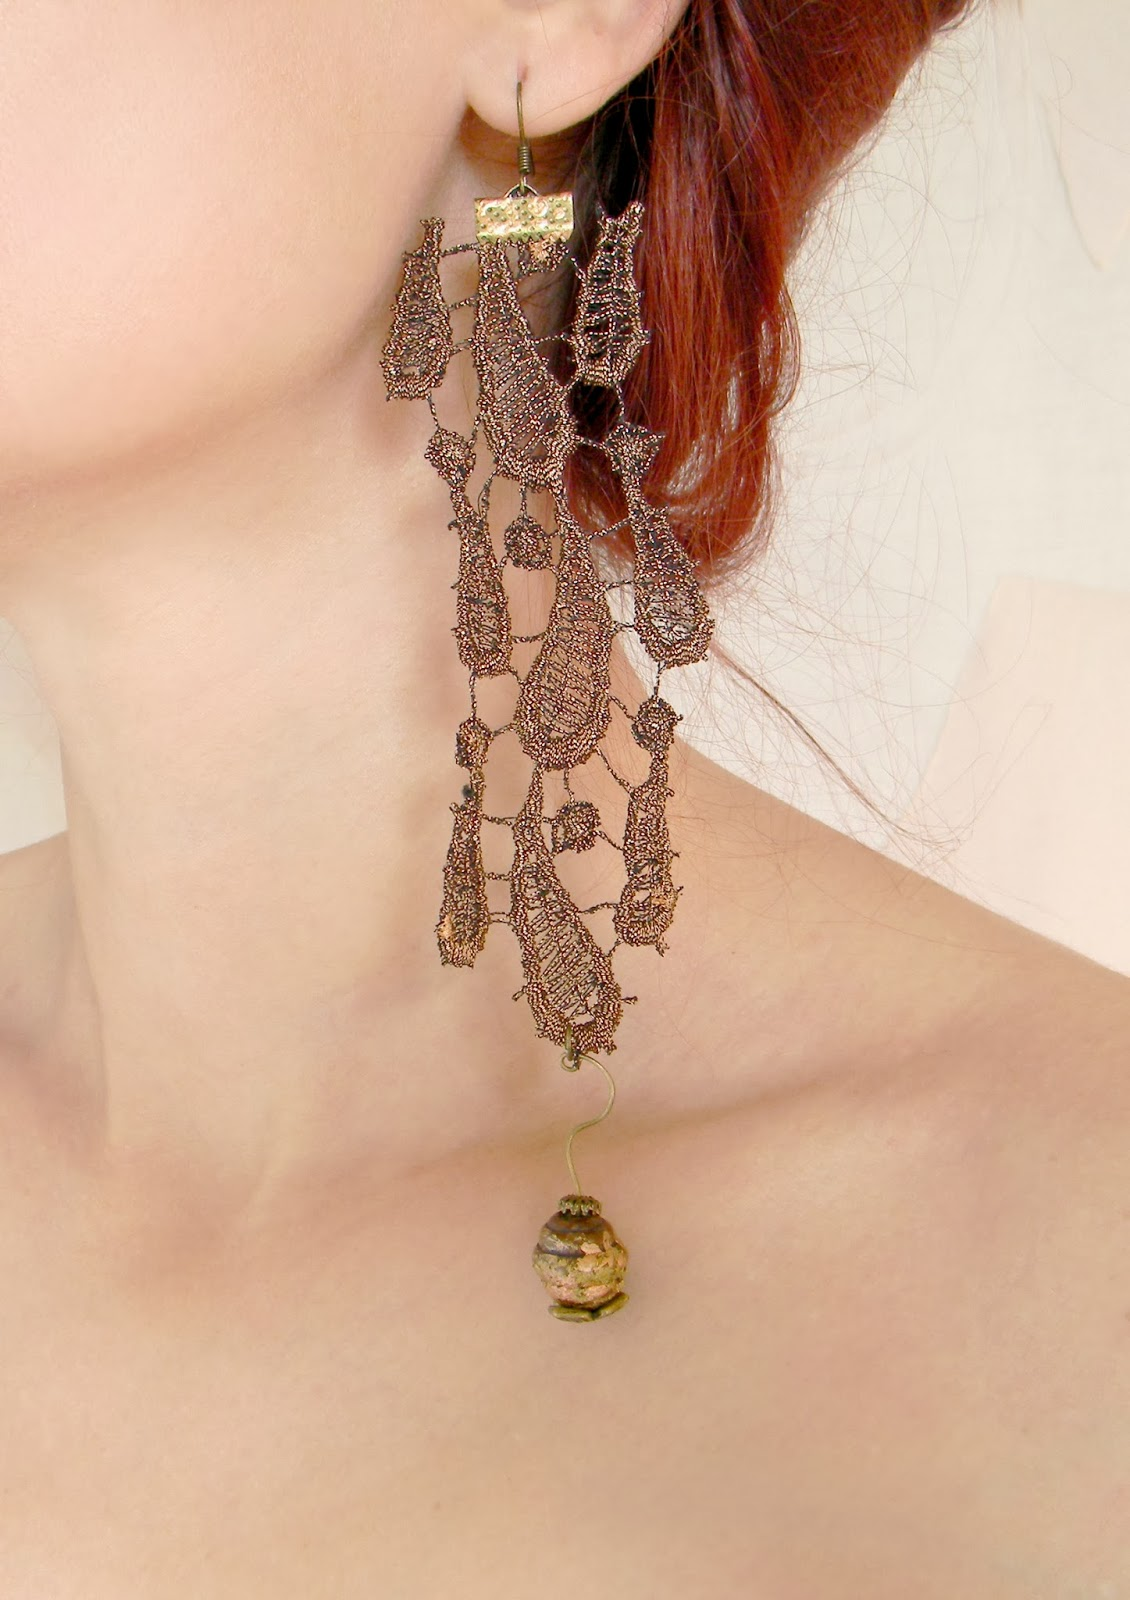 Baroque Lace Earrings Long Floral Earrings Textile Jewelry